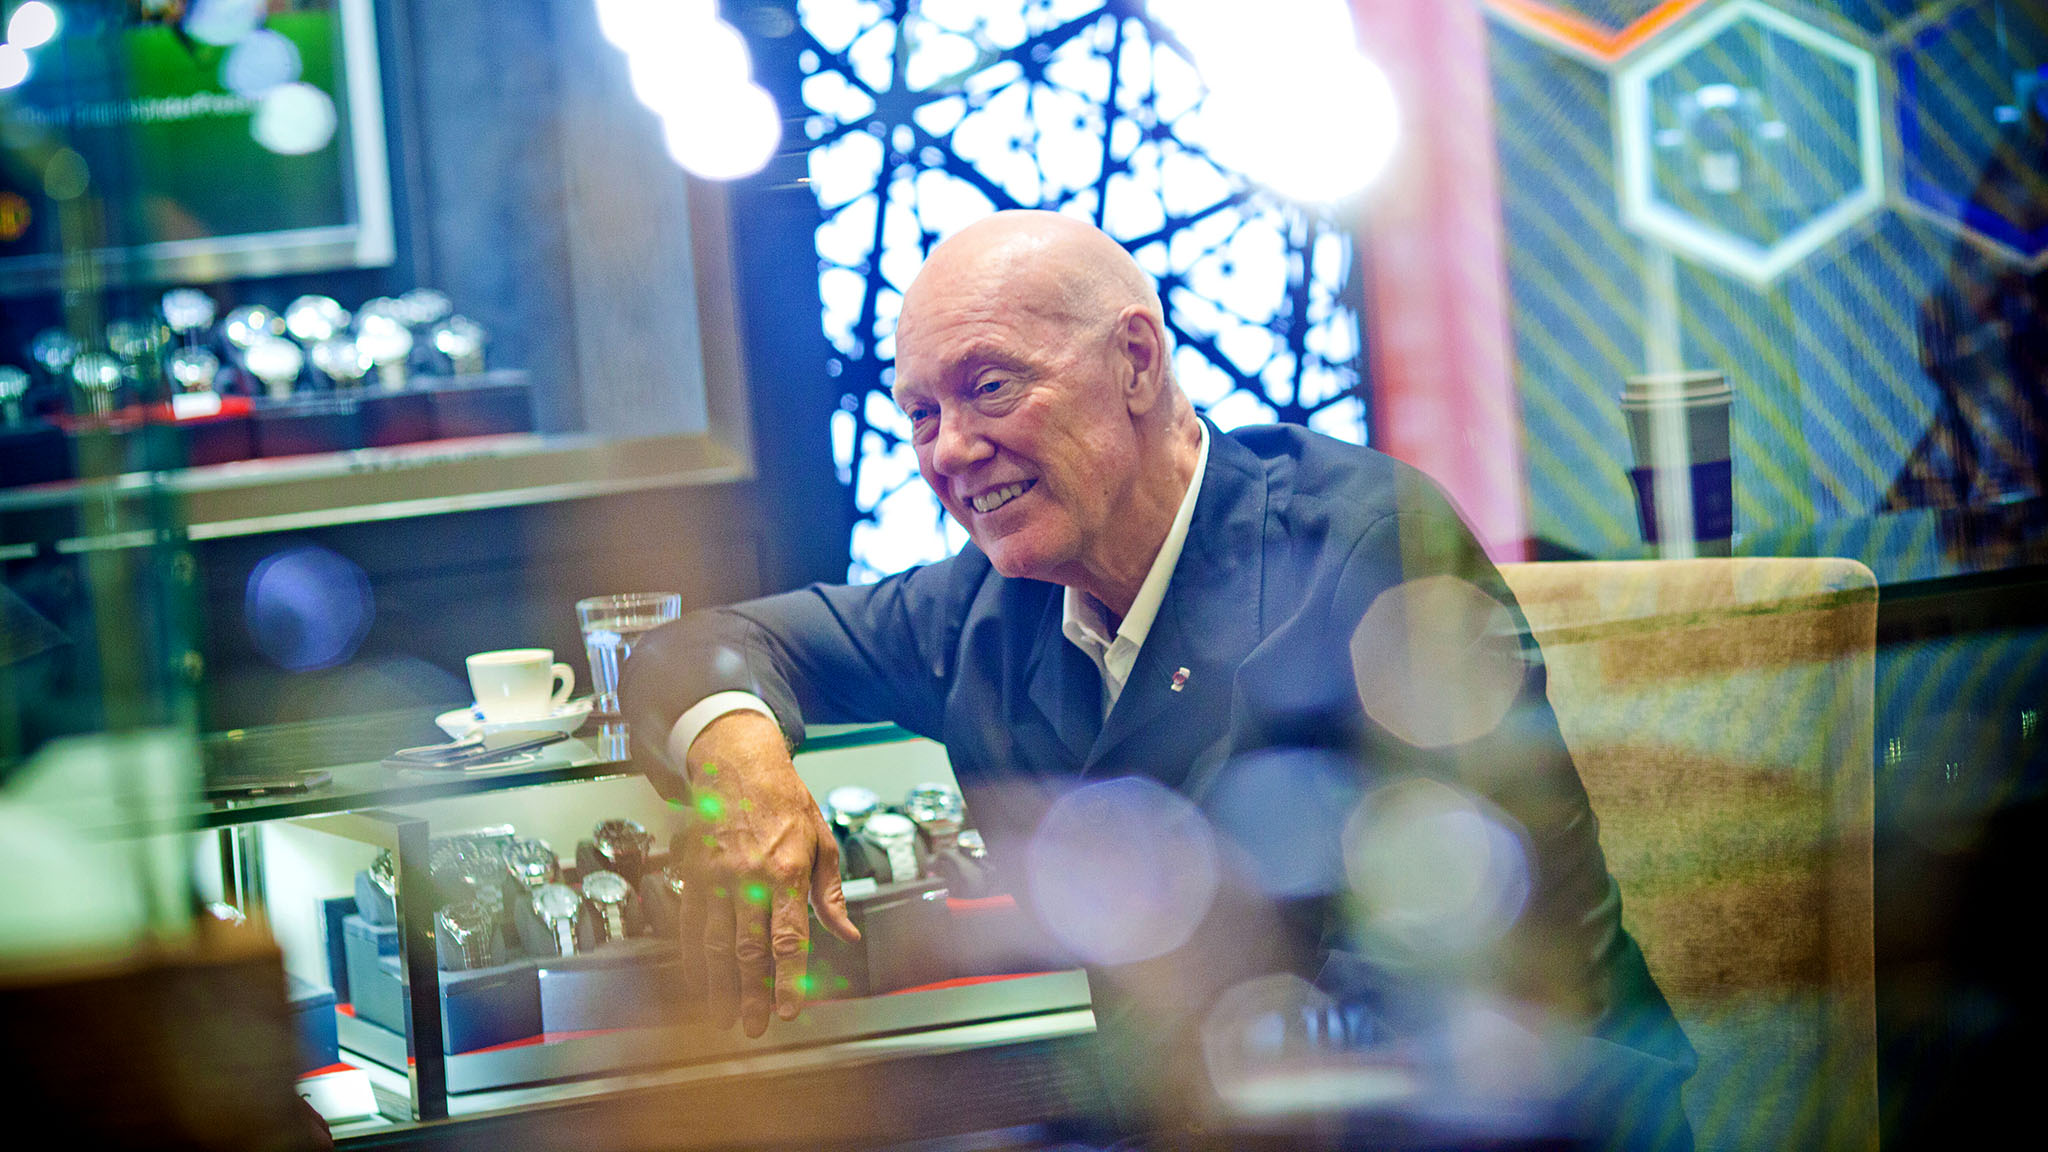 Jean-Claude Biver: shrewd timing helped face down crisis